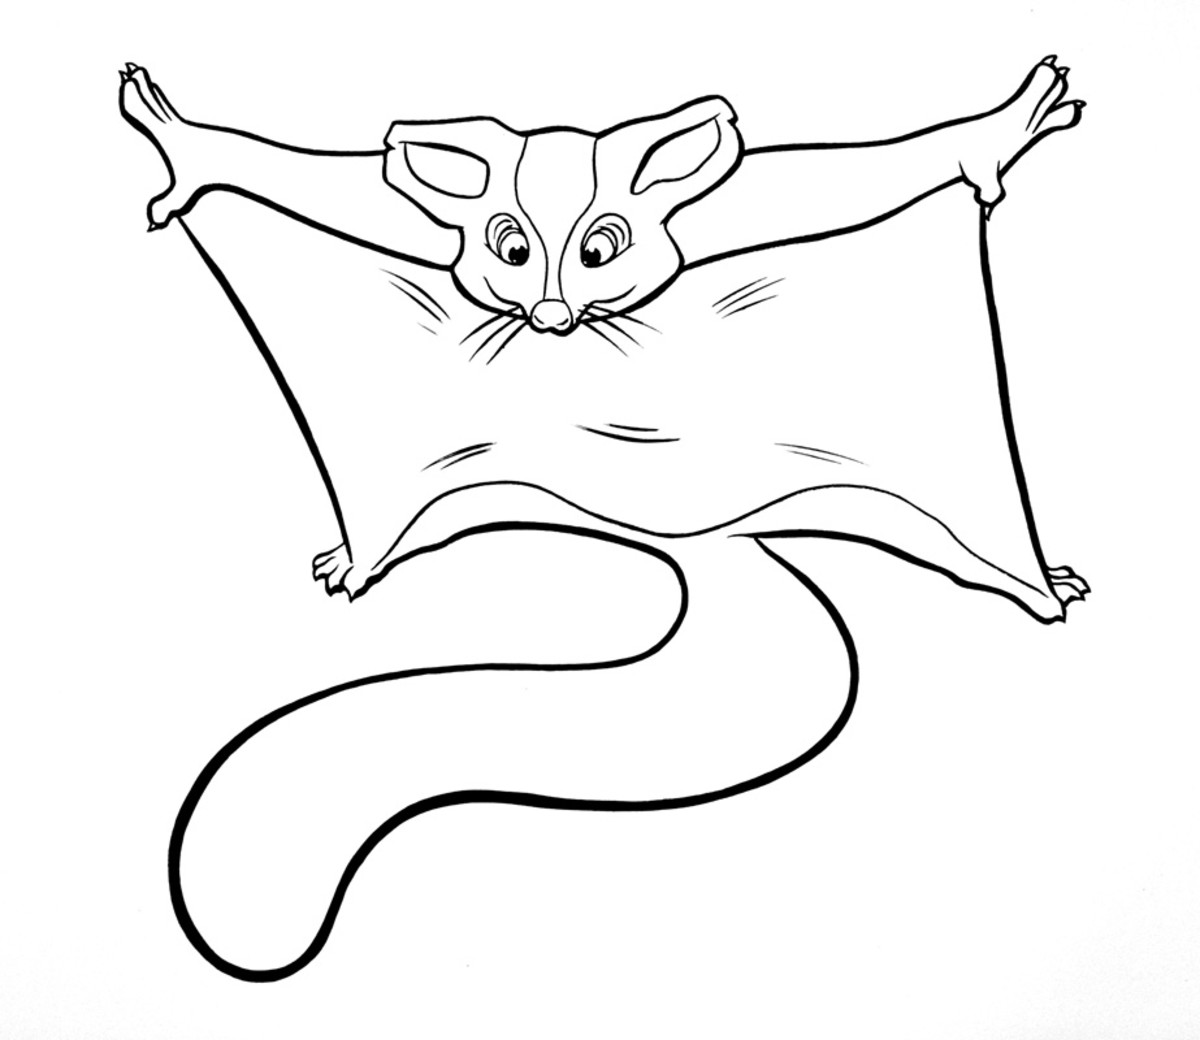 Sugar glider coloring page. Print out for your child.